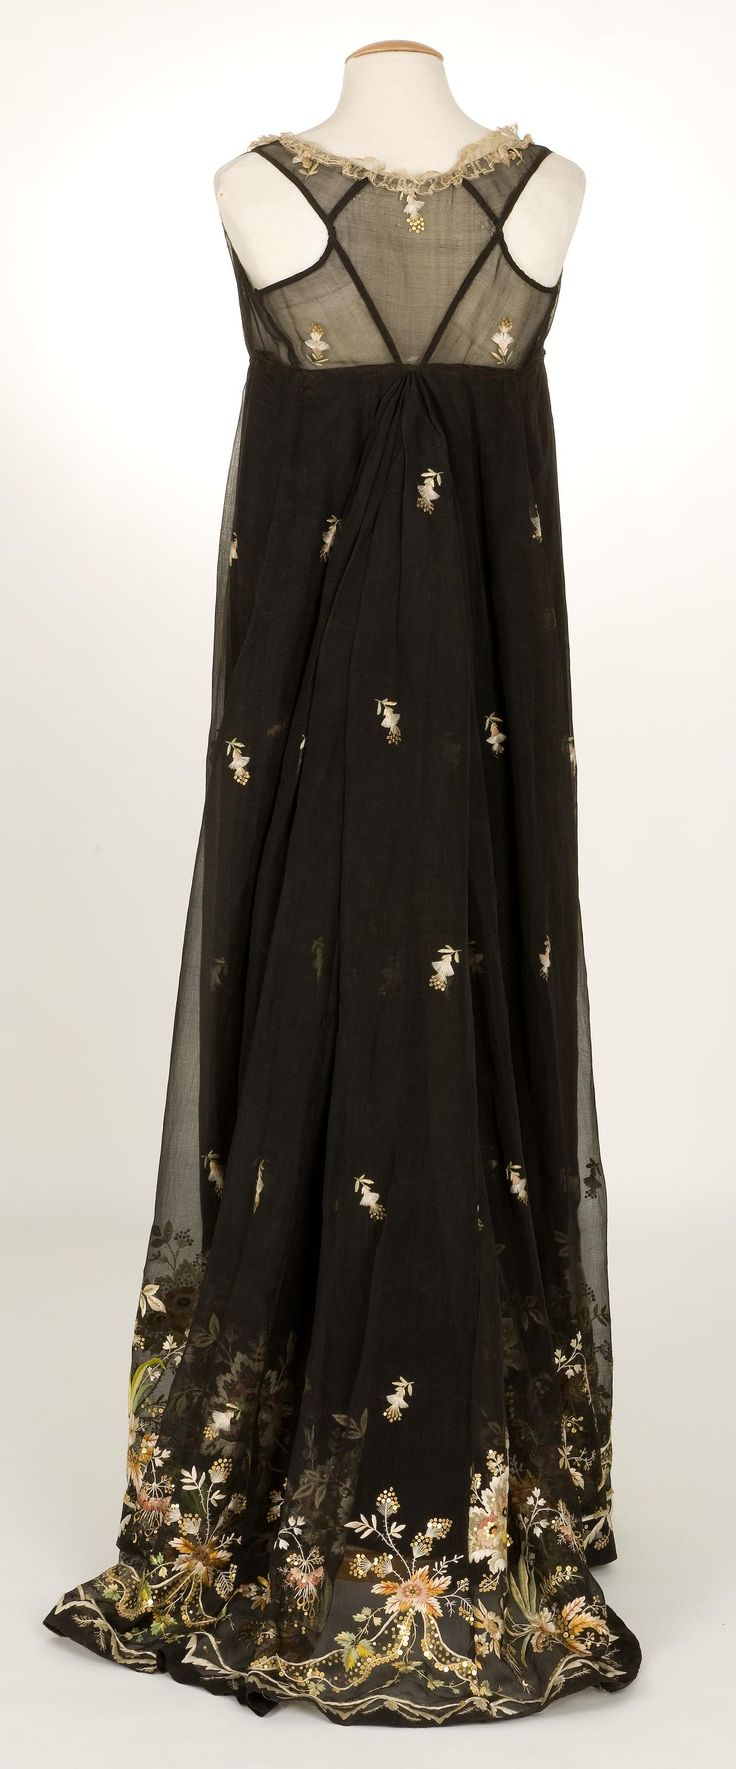 Dress, 1800-1810, Documentation Centre ja Textile Museum - CDMT